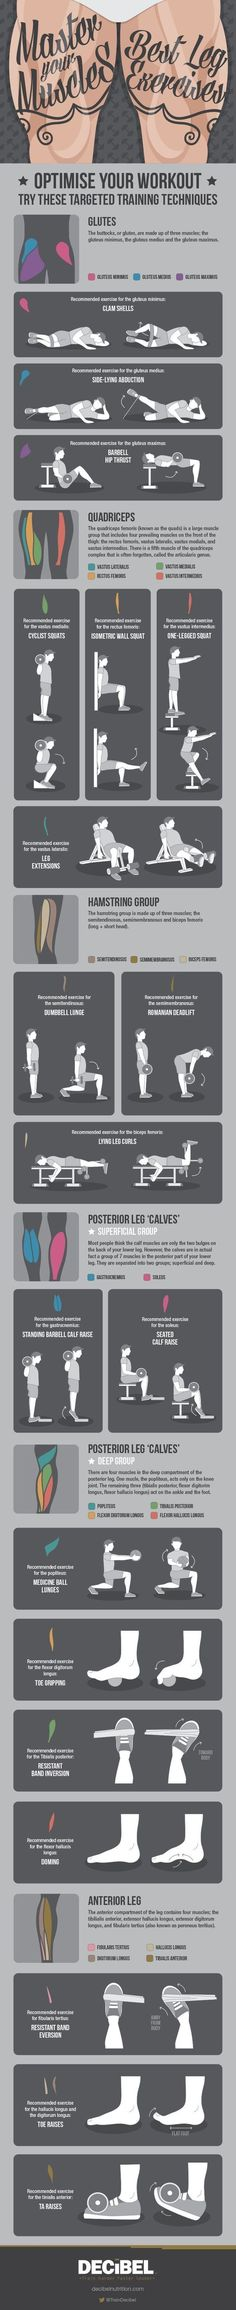 Work those legs. Muscles in the leg workouts